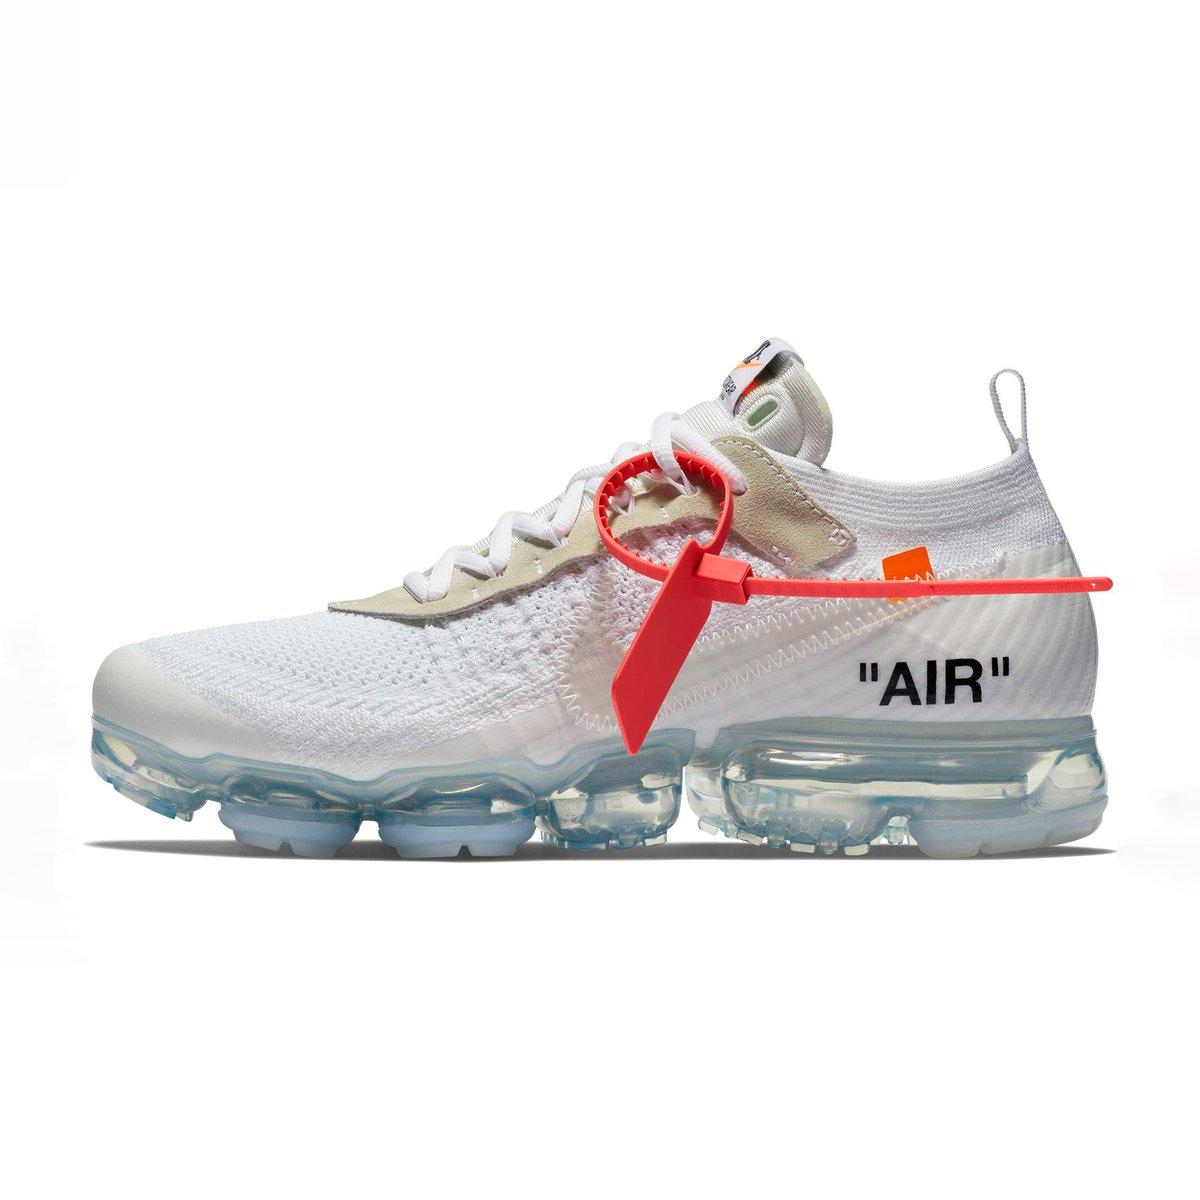 04dc7ddf6bc Raffle is now open for the OFF WHITE x Nike Air Vapormax